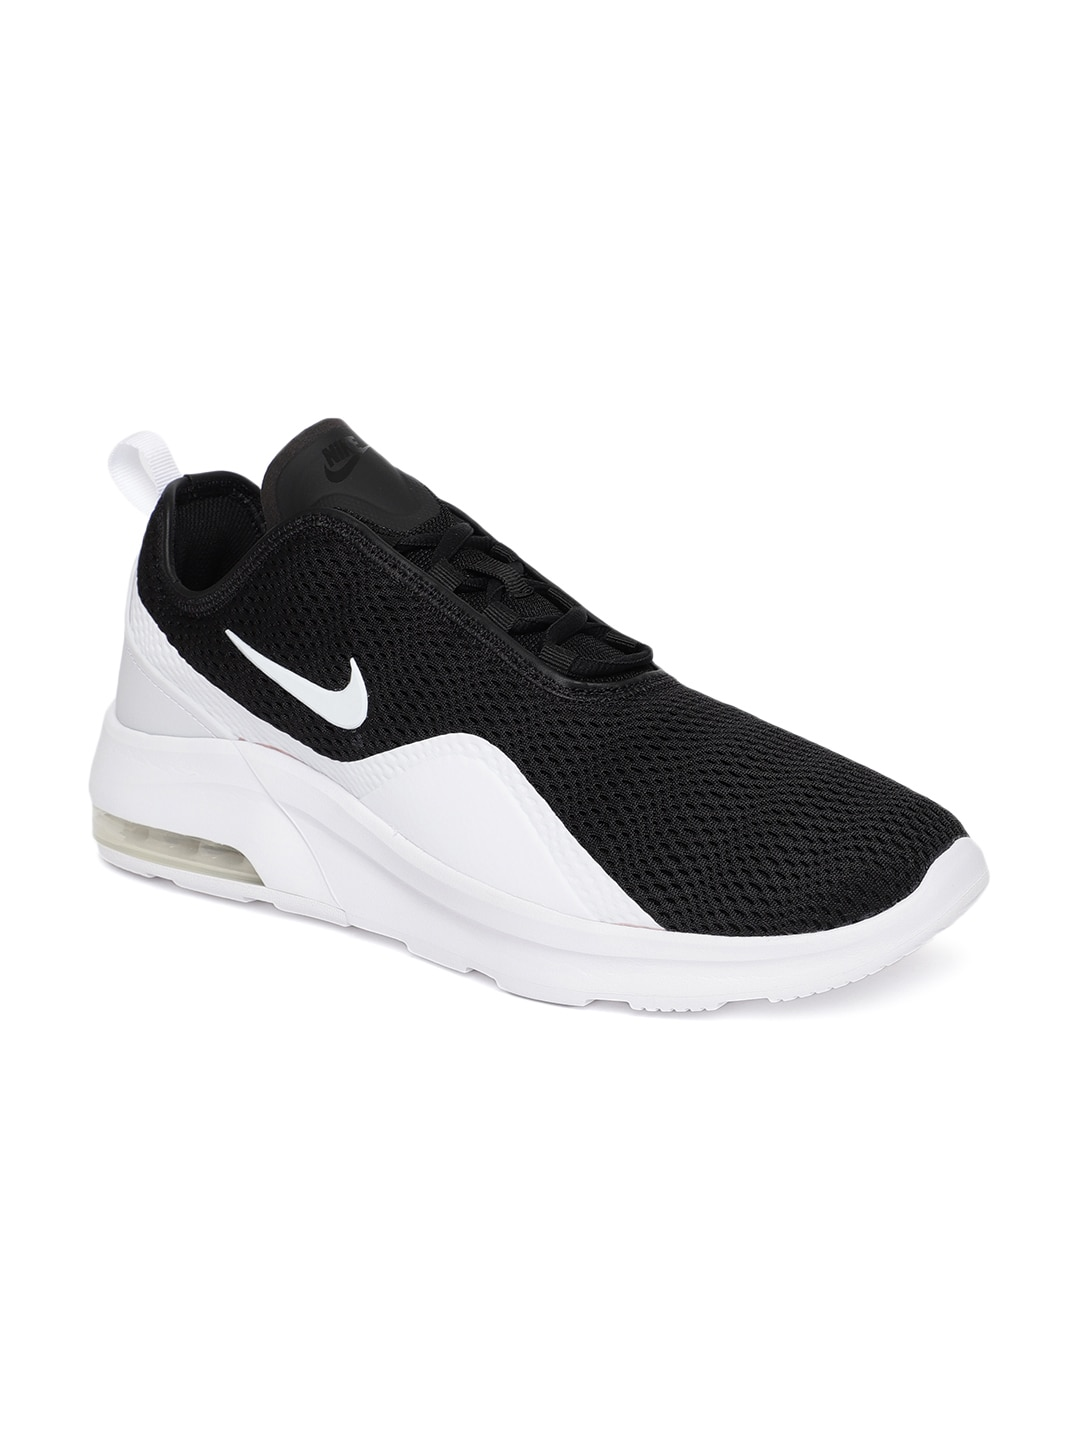 new product 0aa98 973e7 Nike Air Max - Buy Nike Air Max Shoes, Bags, Sneakers in India